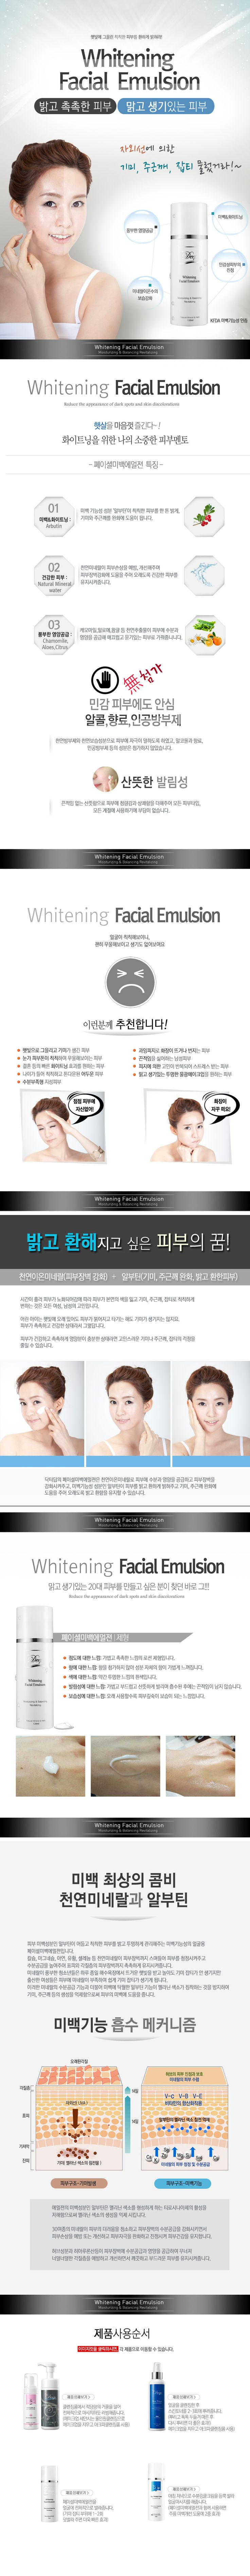 Facial Emulsion(Product page Design)